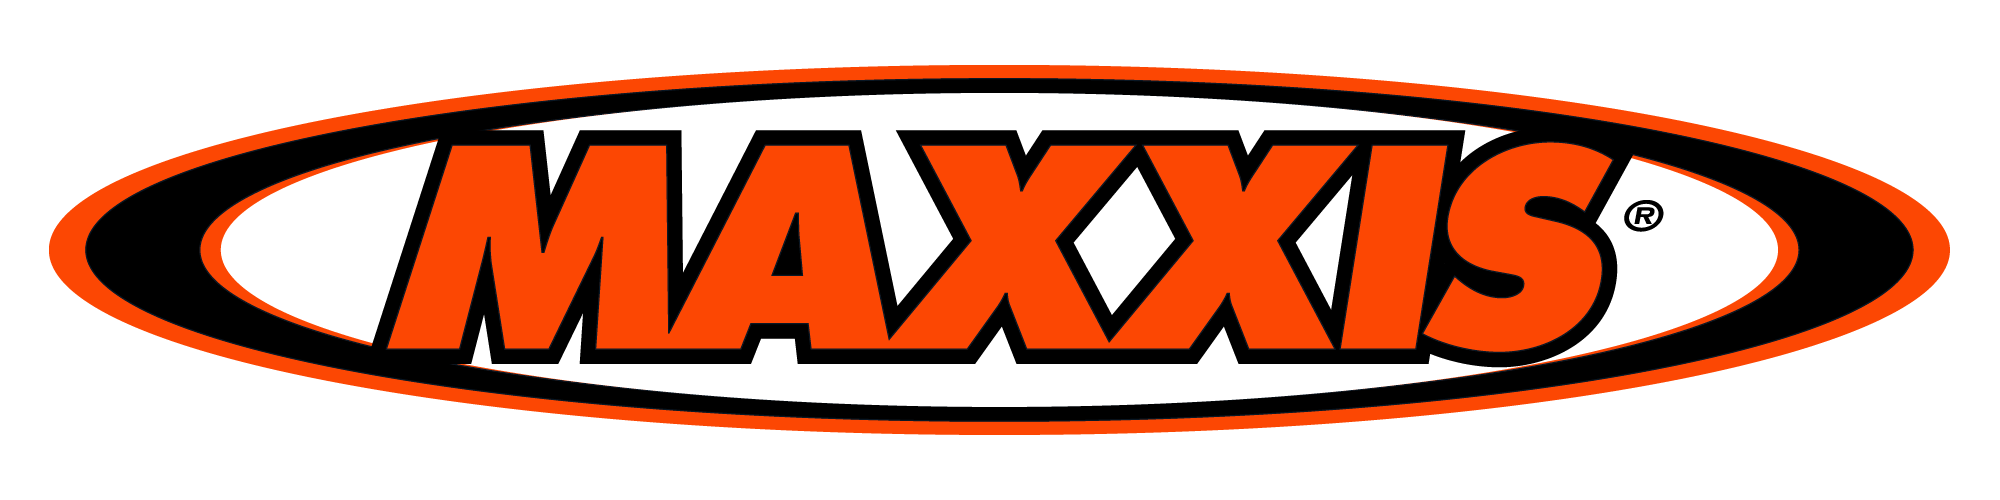 Maxxis-Tires-logo-2000x500.png